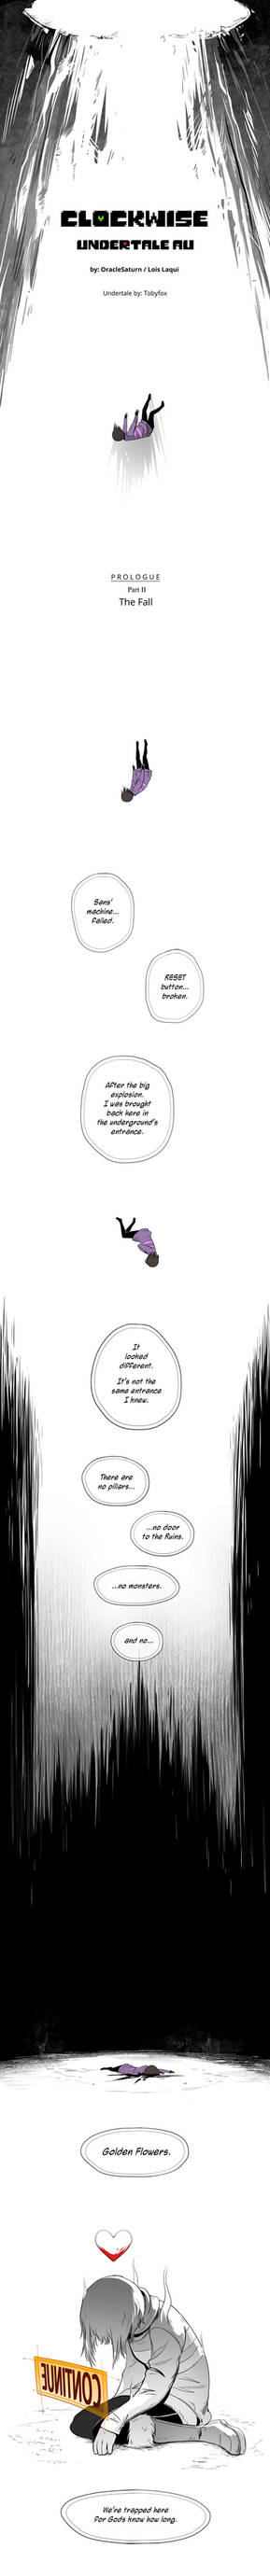 Clockwise: Prologue Part II page 1